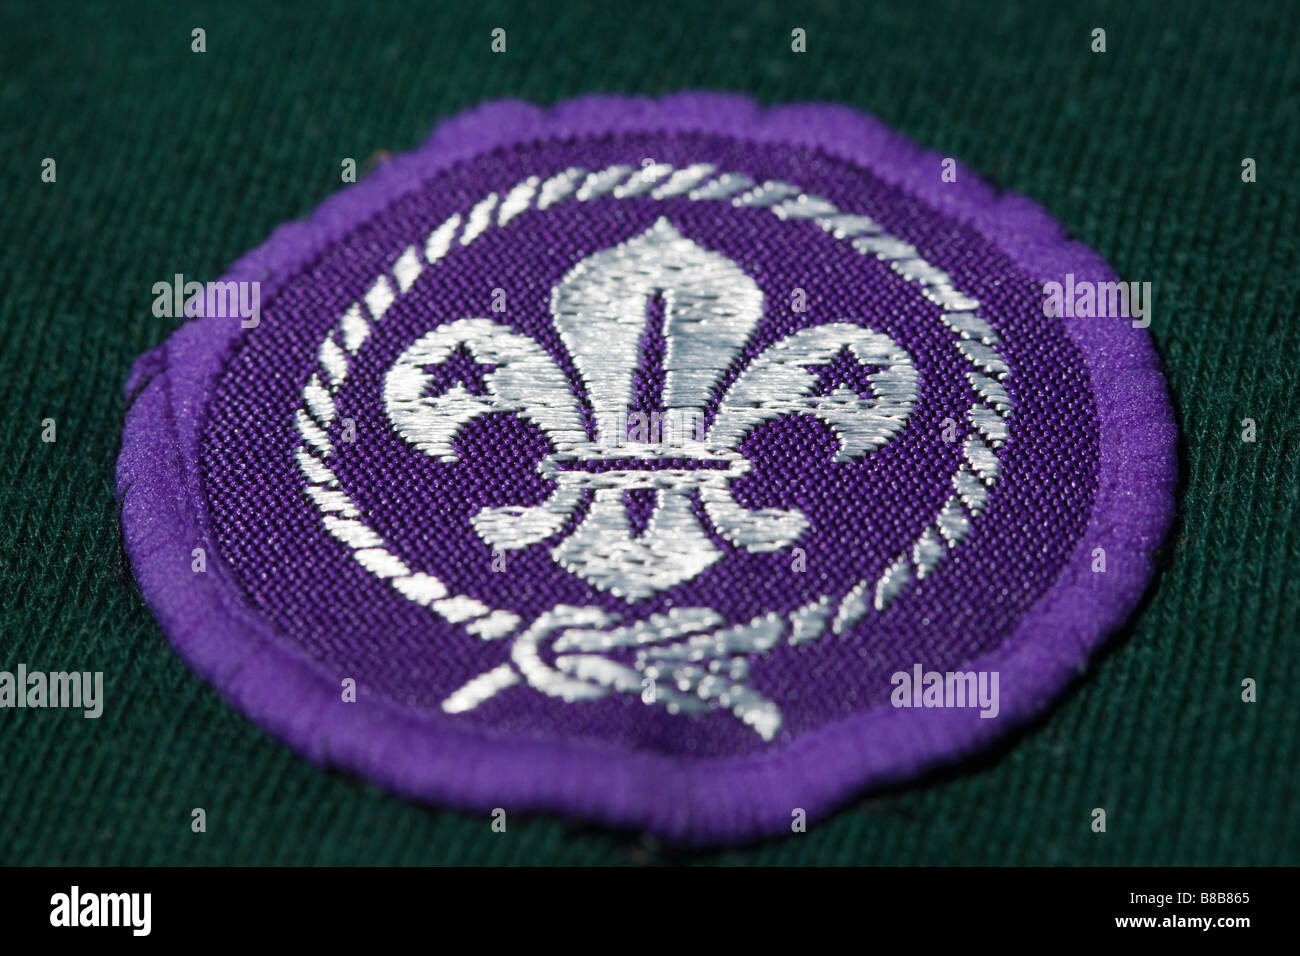 Close up of Cub Scout bagde on green jersey - Stock Image